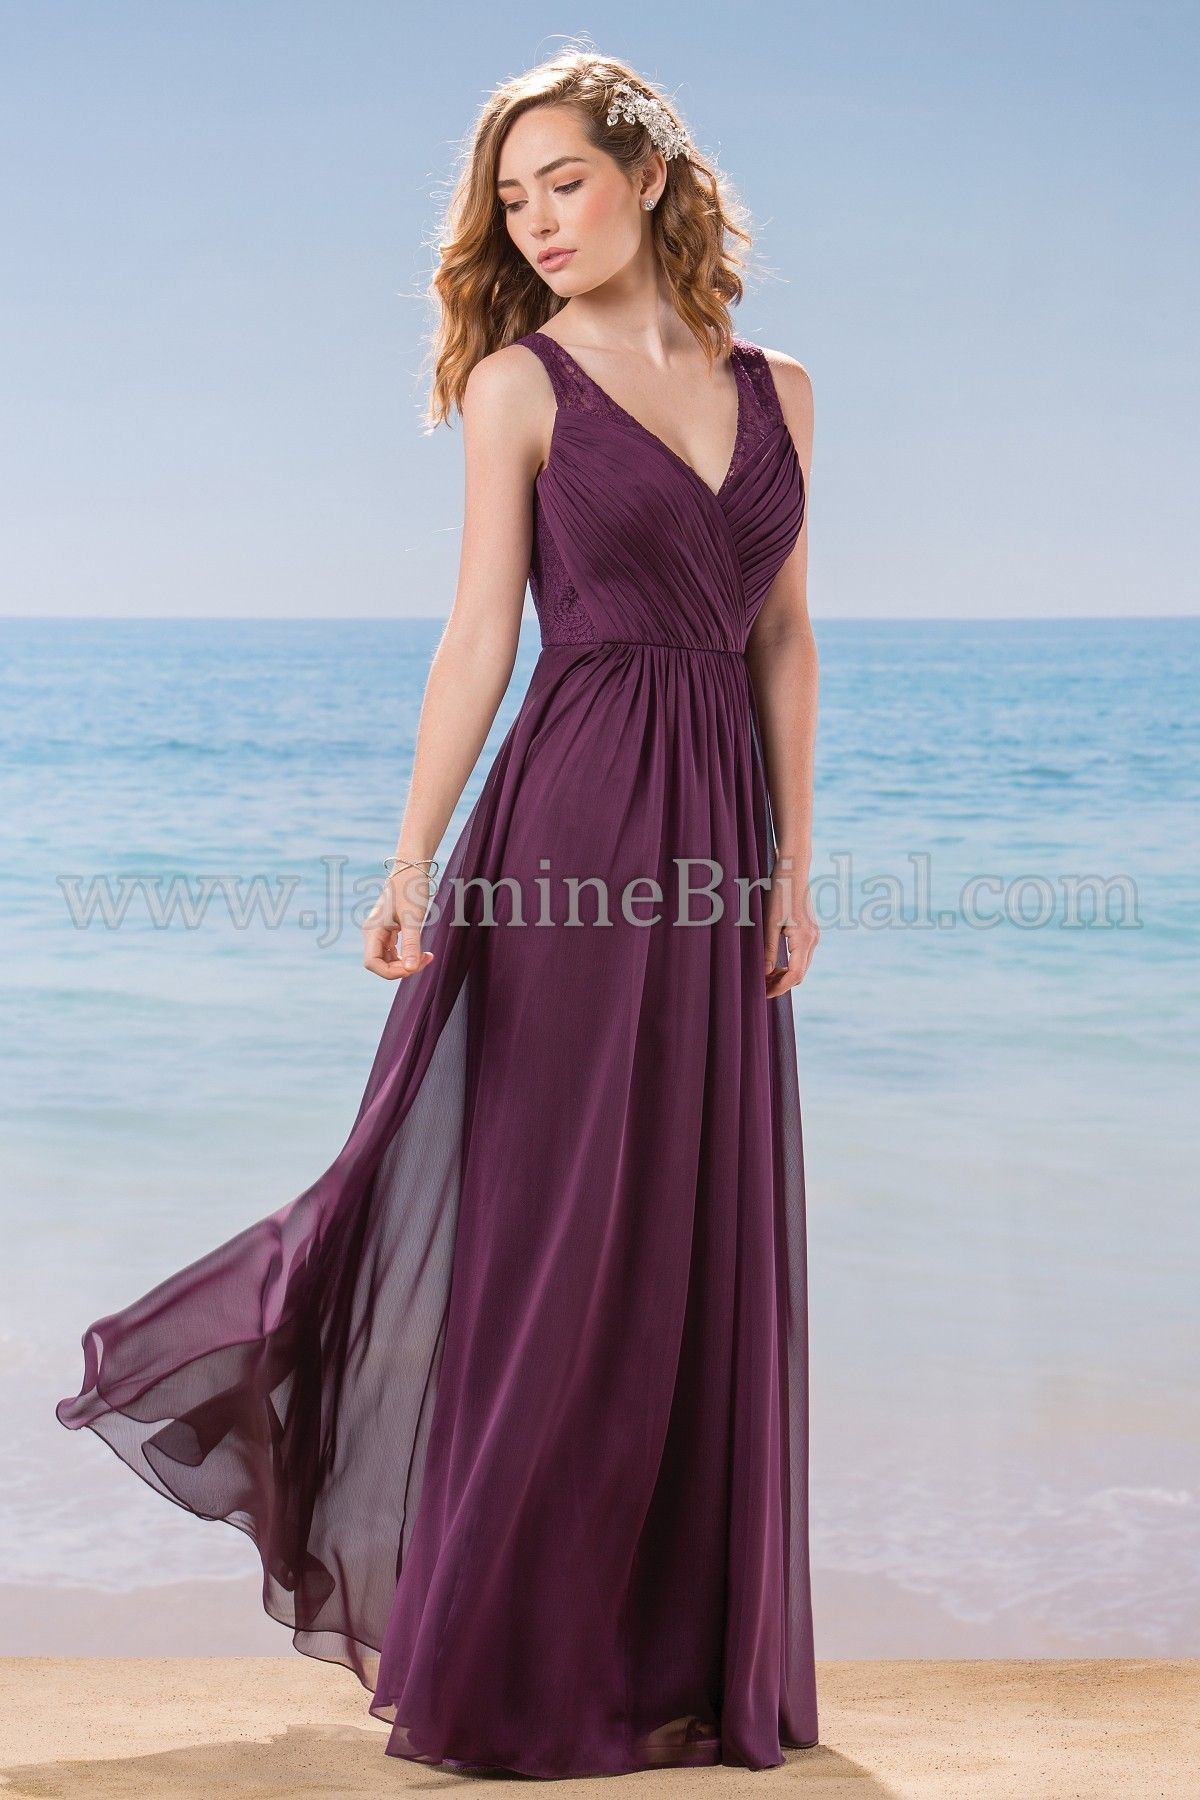 Jasmine Bridal Bridesmaid Dress Belsoie Style L184016 in Bordeaux ...